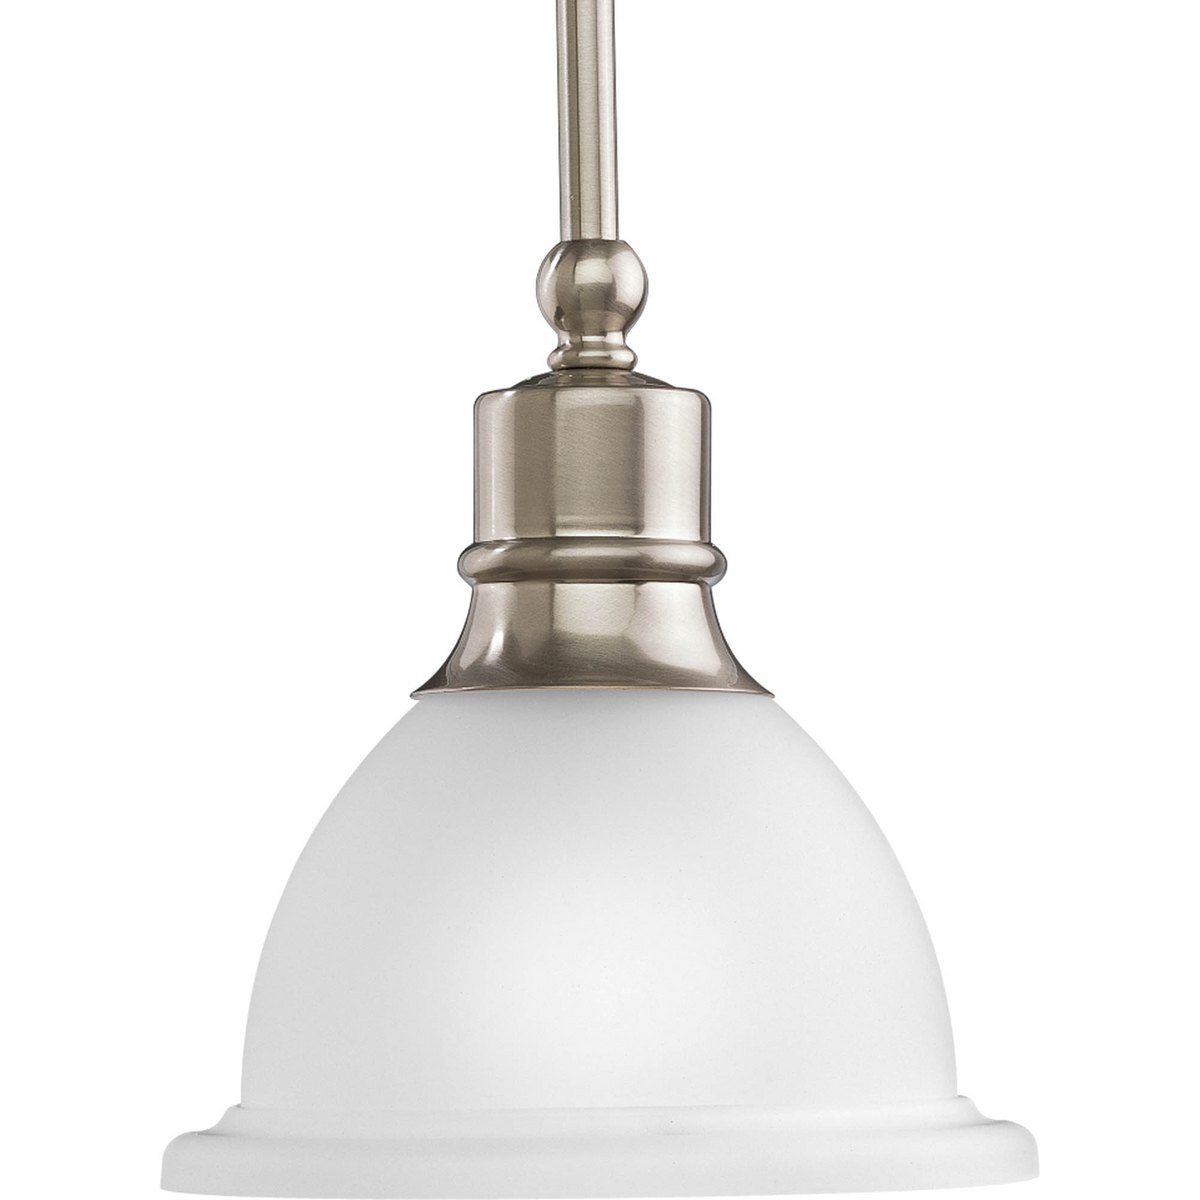 PRO P5078-09 1X100M Brushed Nickel Etched Glass Mini Pendant